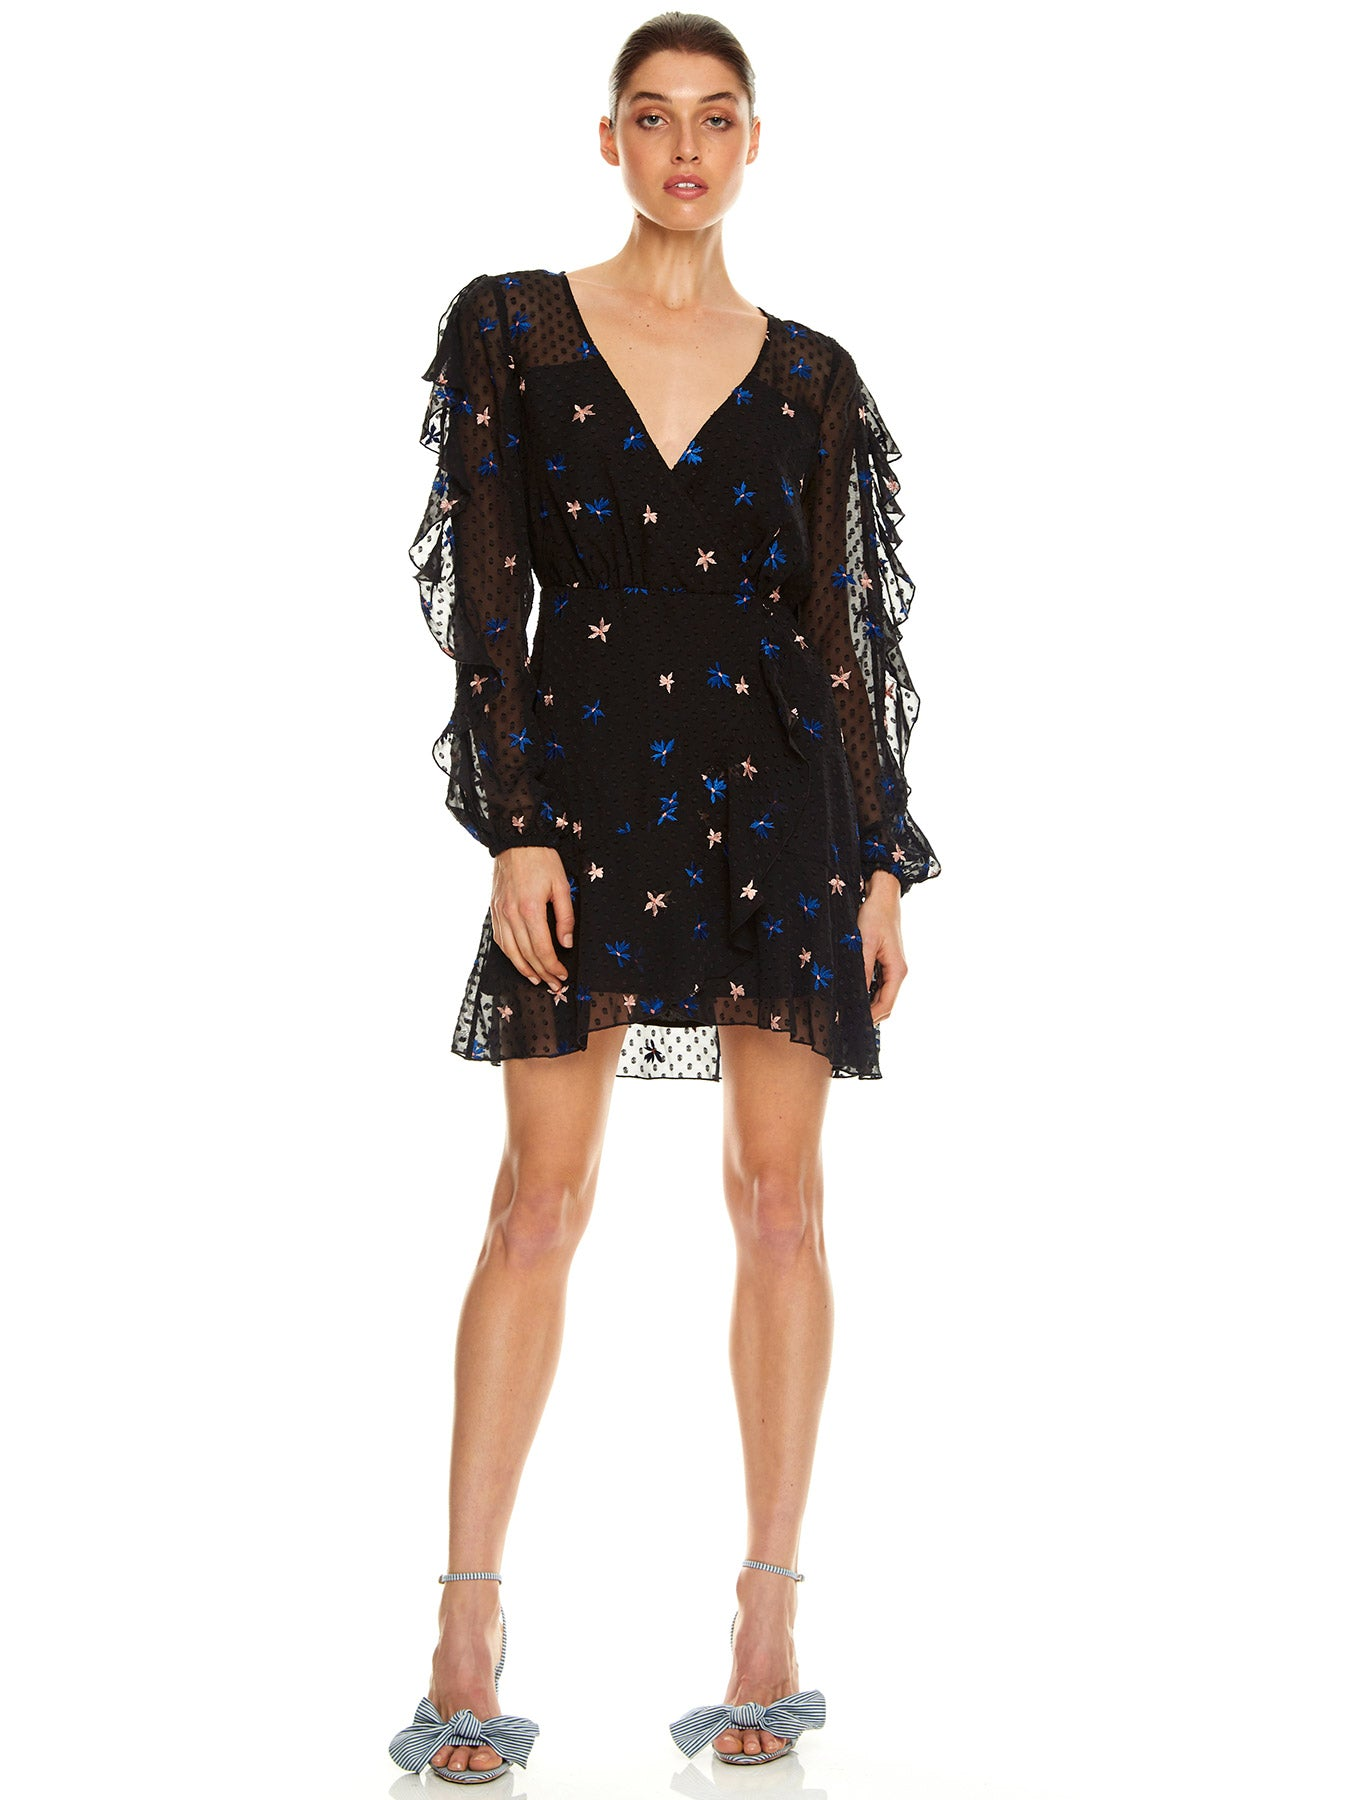 UP ALL NIGHT L/S MINI DRESS